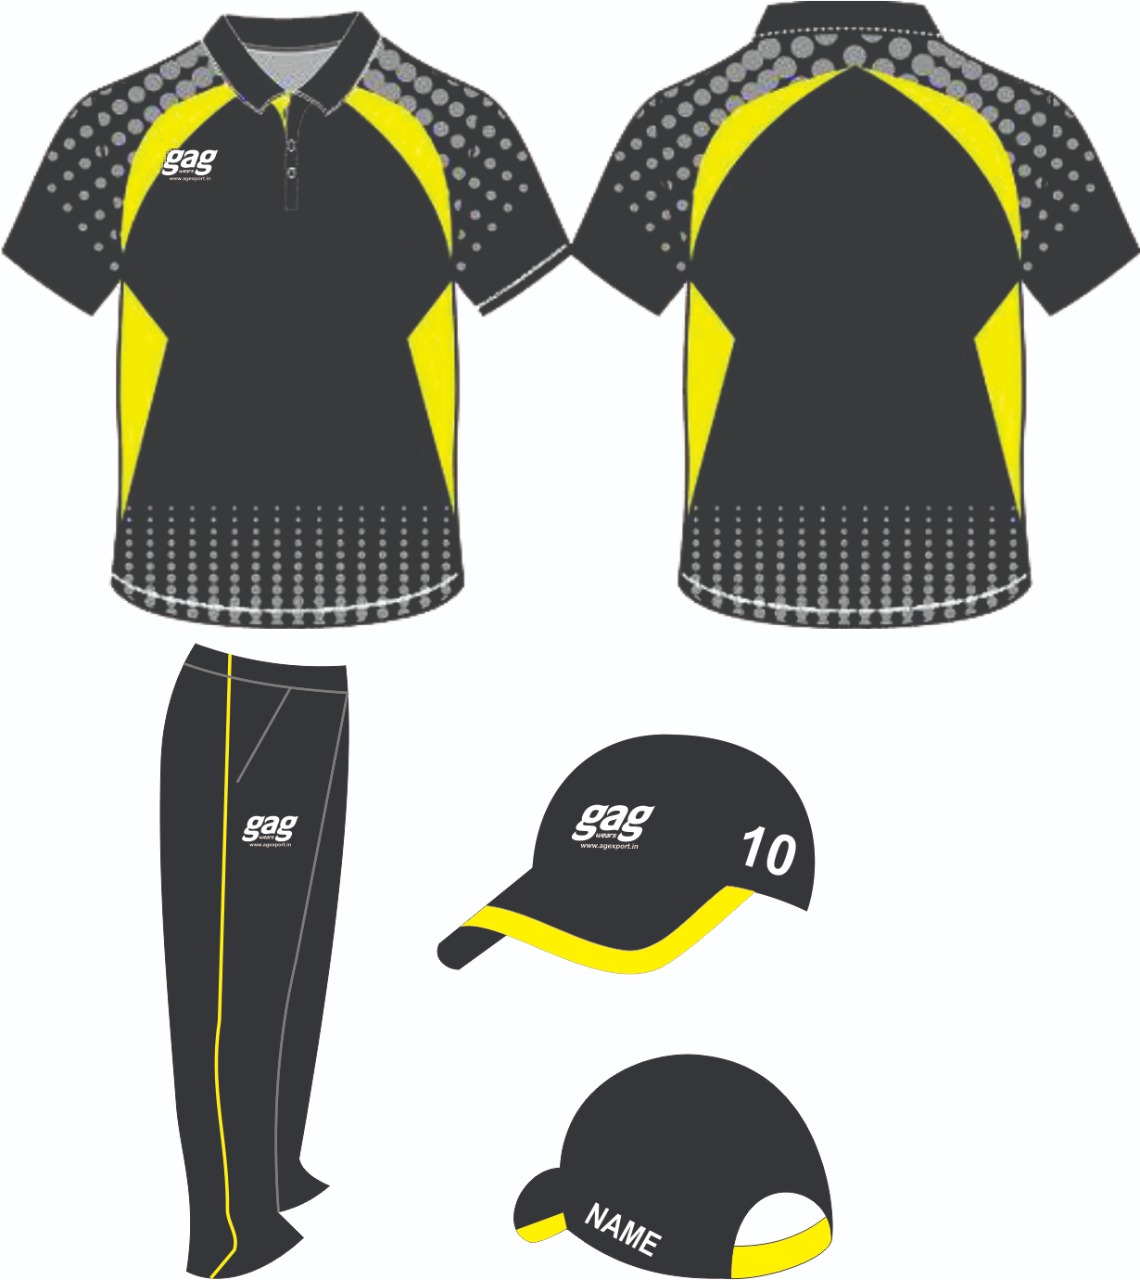 Cricket Uniform Manufacturers and Exporters in Kottayam